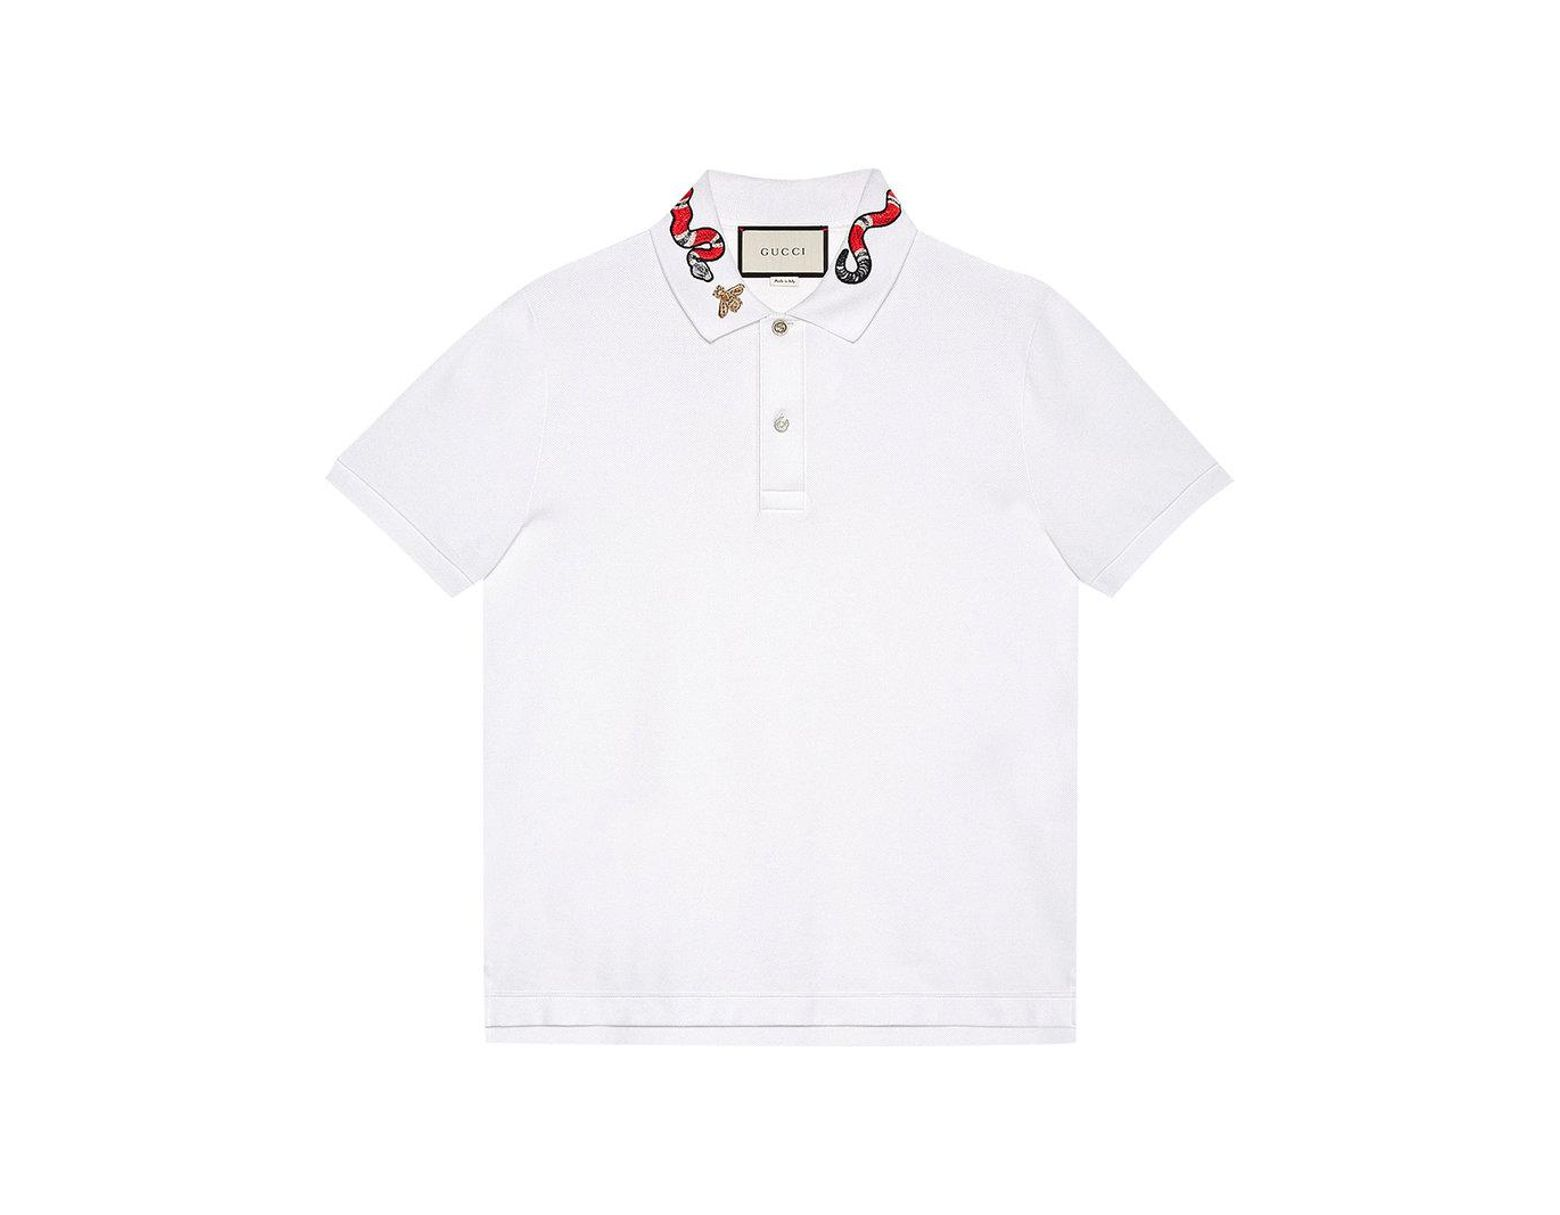 da41aba07 Gucci Kingsnake Embroidered Polo Shirt in White for Men - Save 7% - Lyst